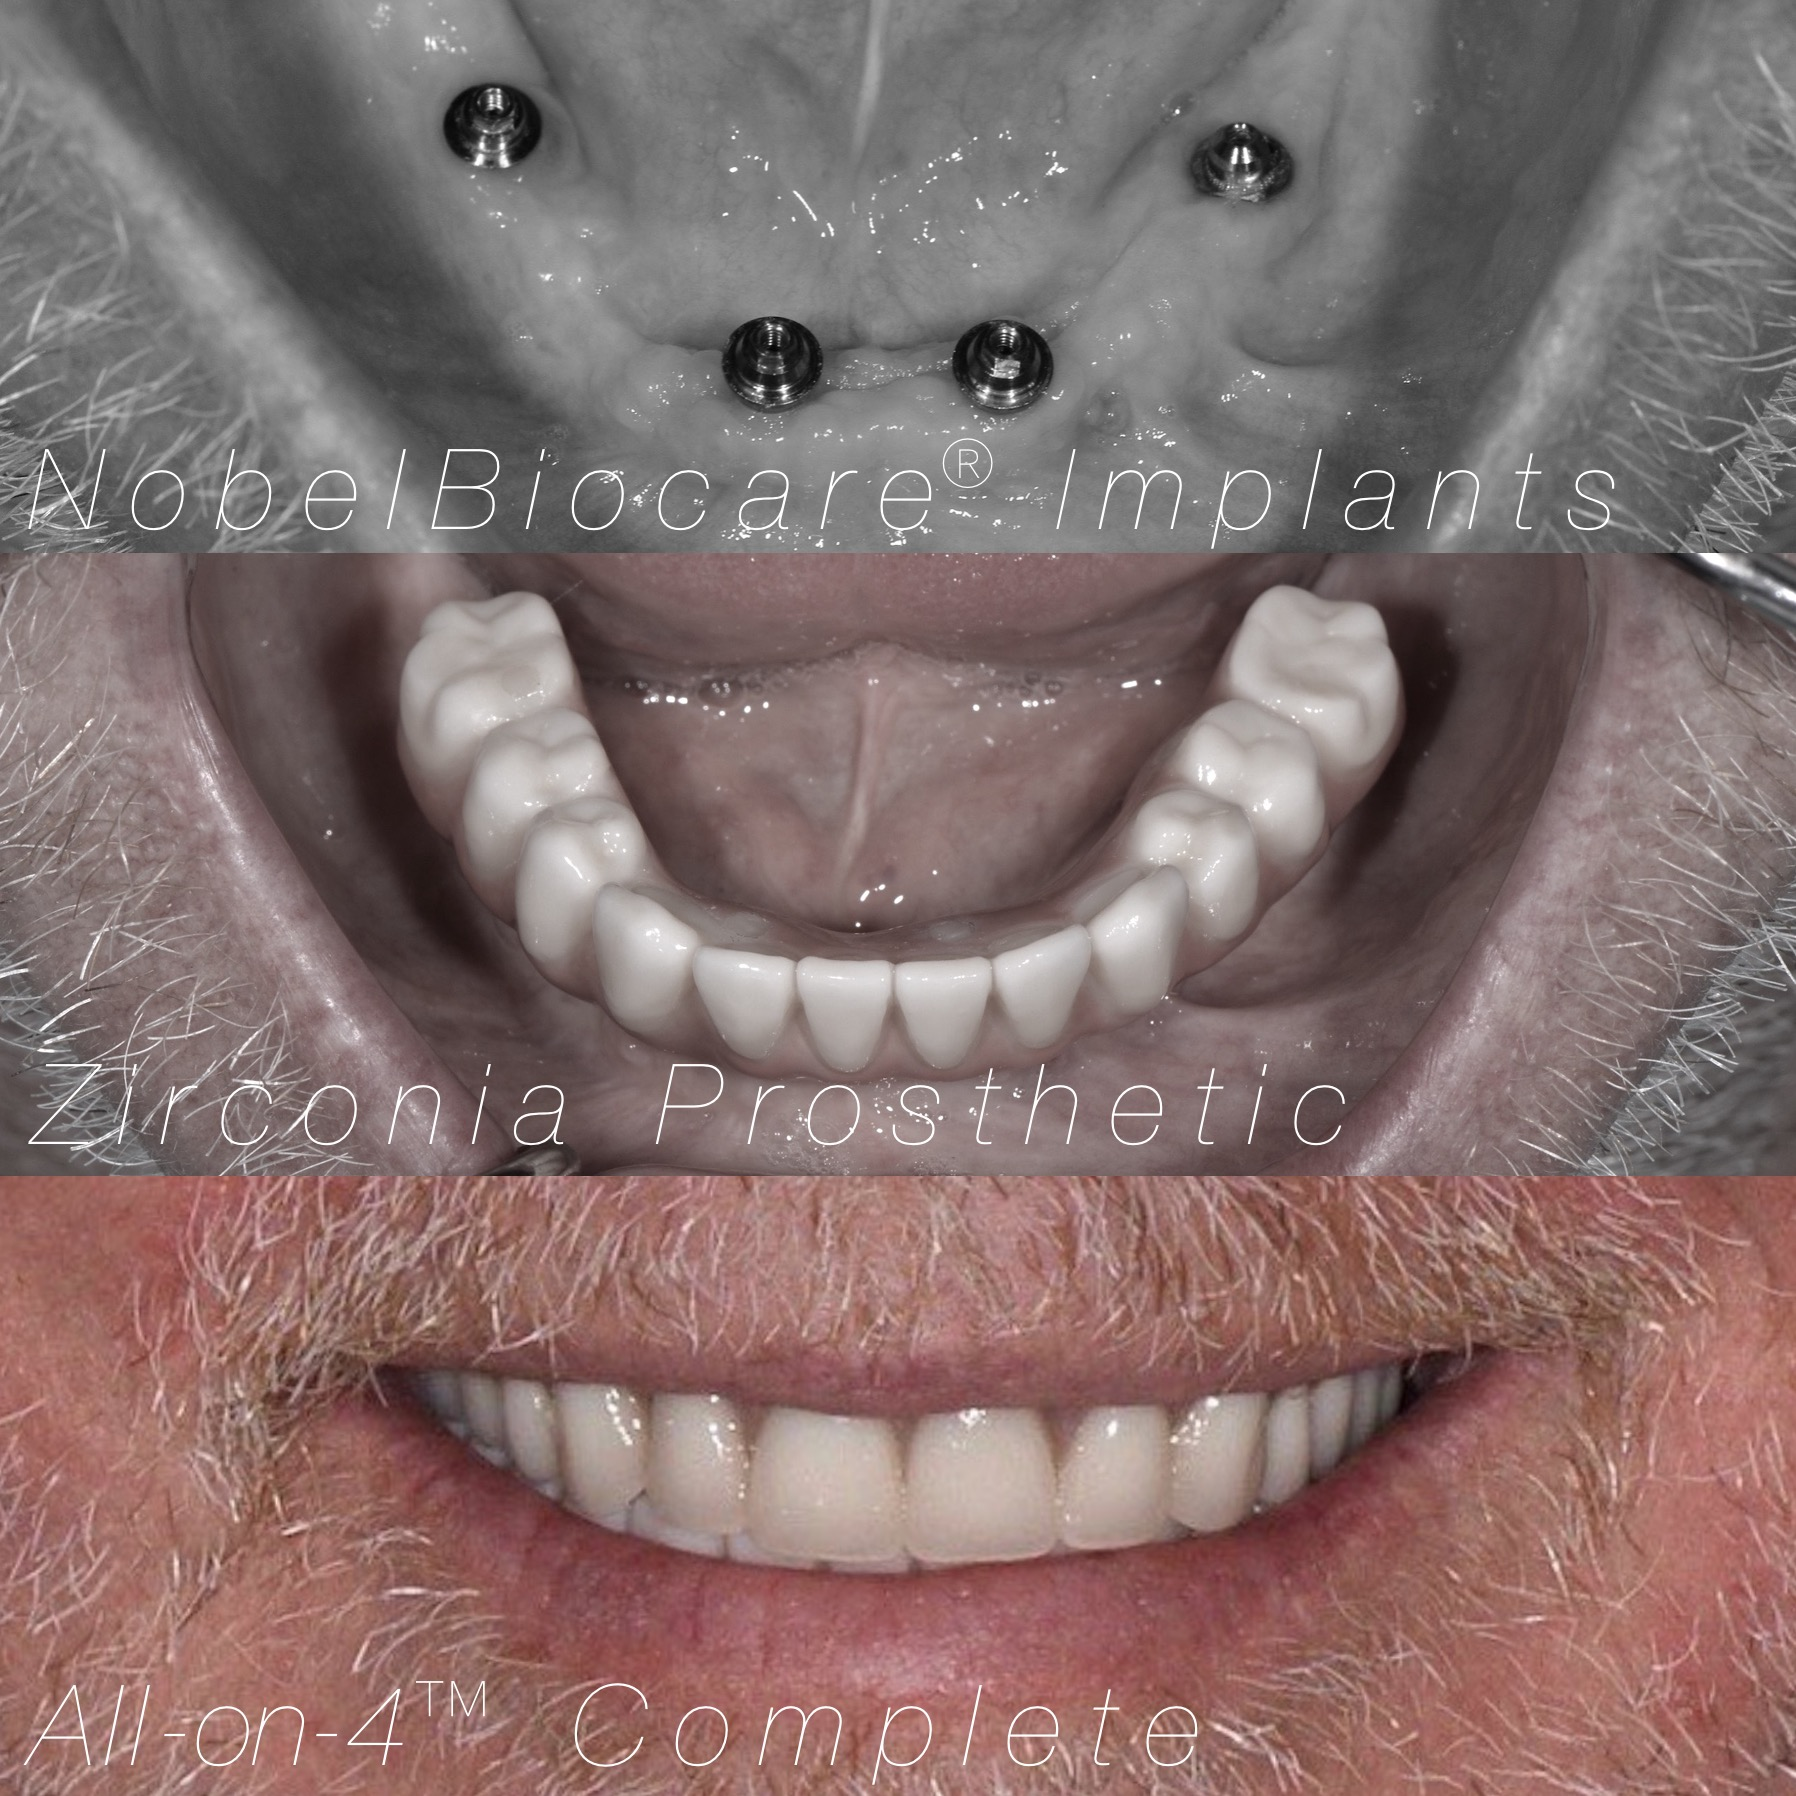 All-on-4 case by Dr. Heldt